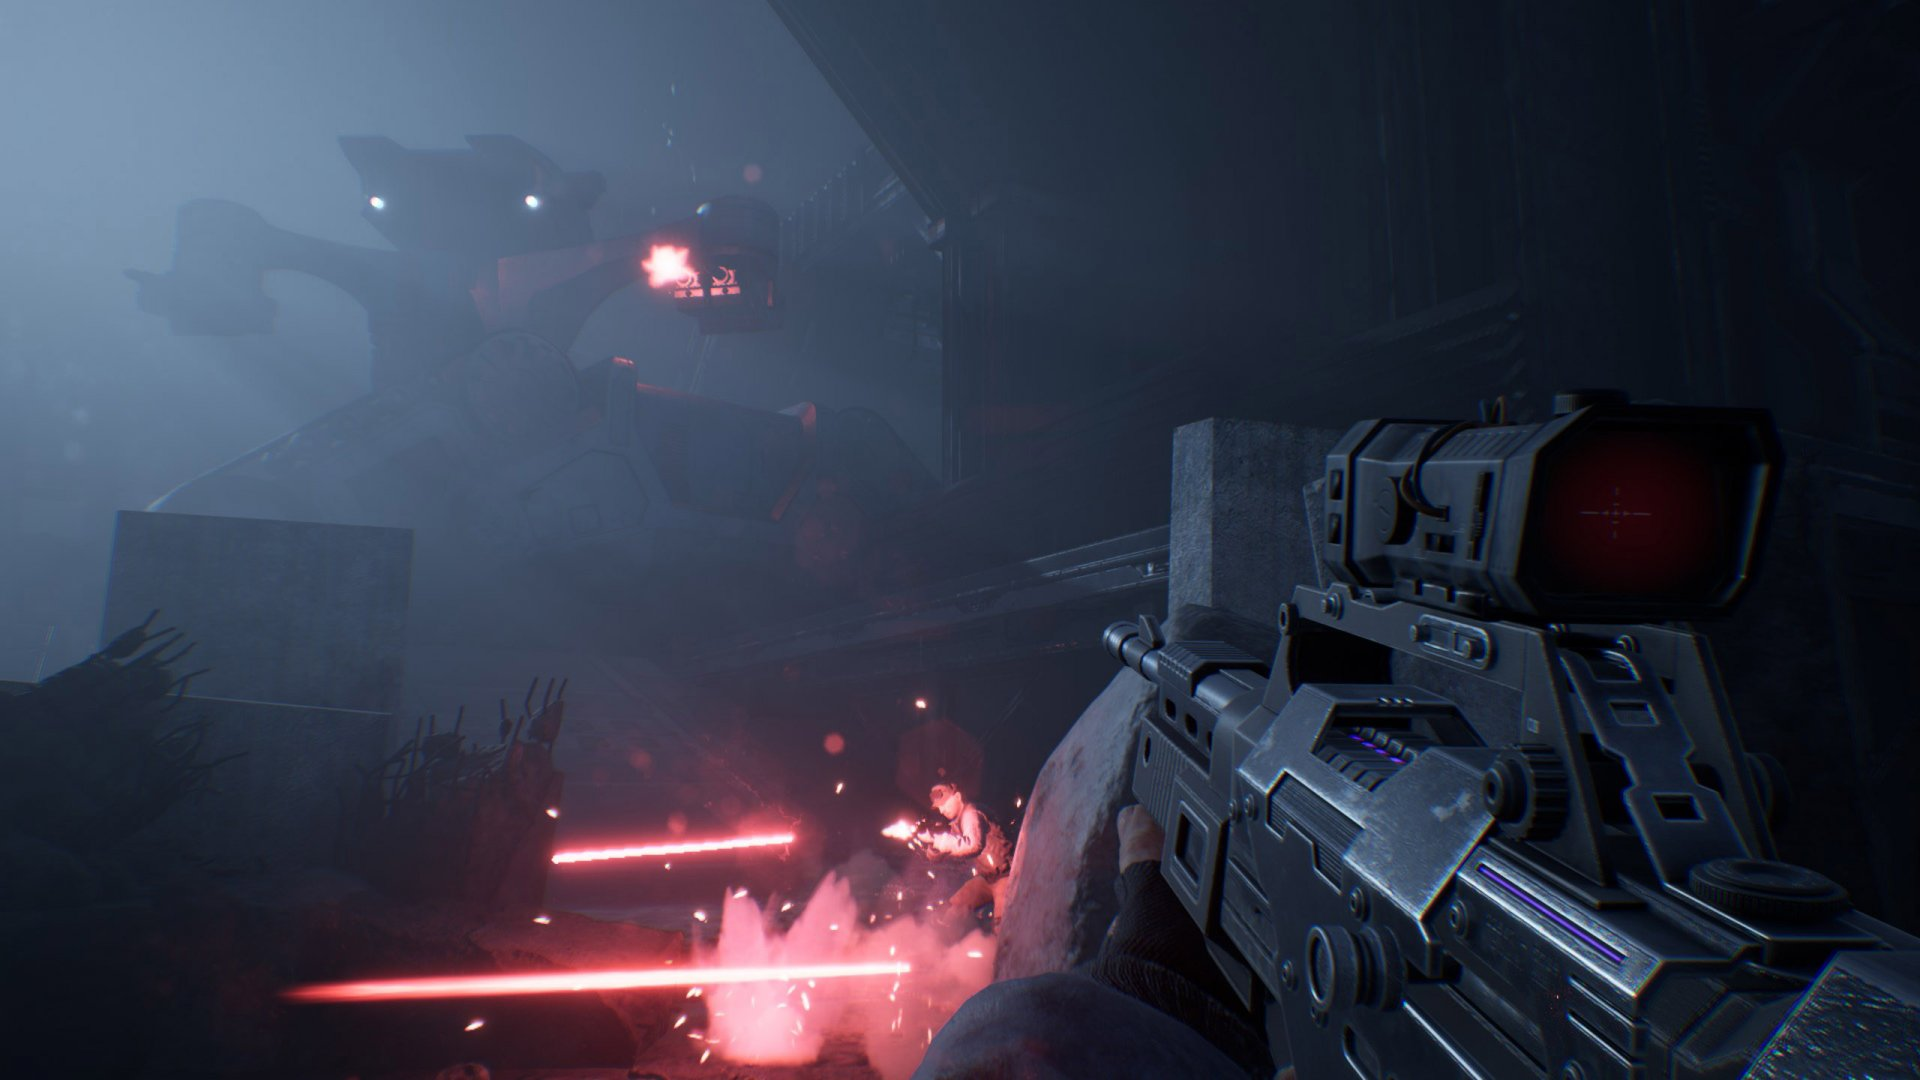 Terminator Resistance is a new official Terminator FPS, first details and screenshots